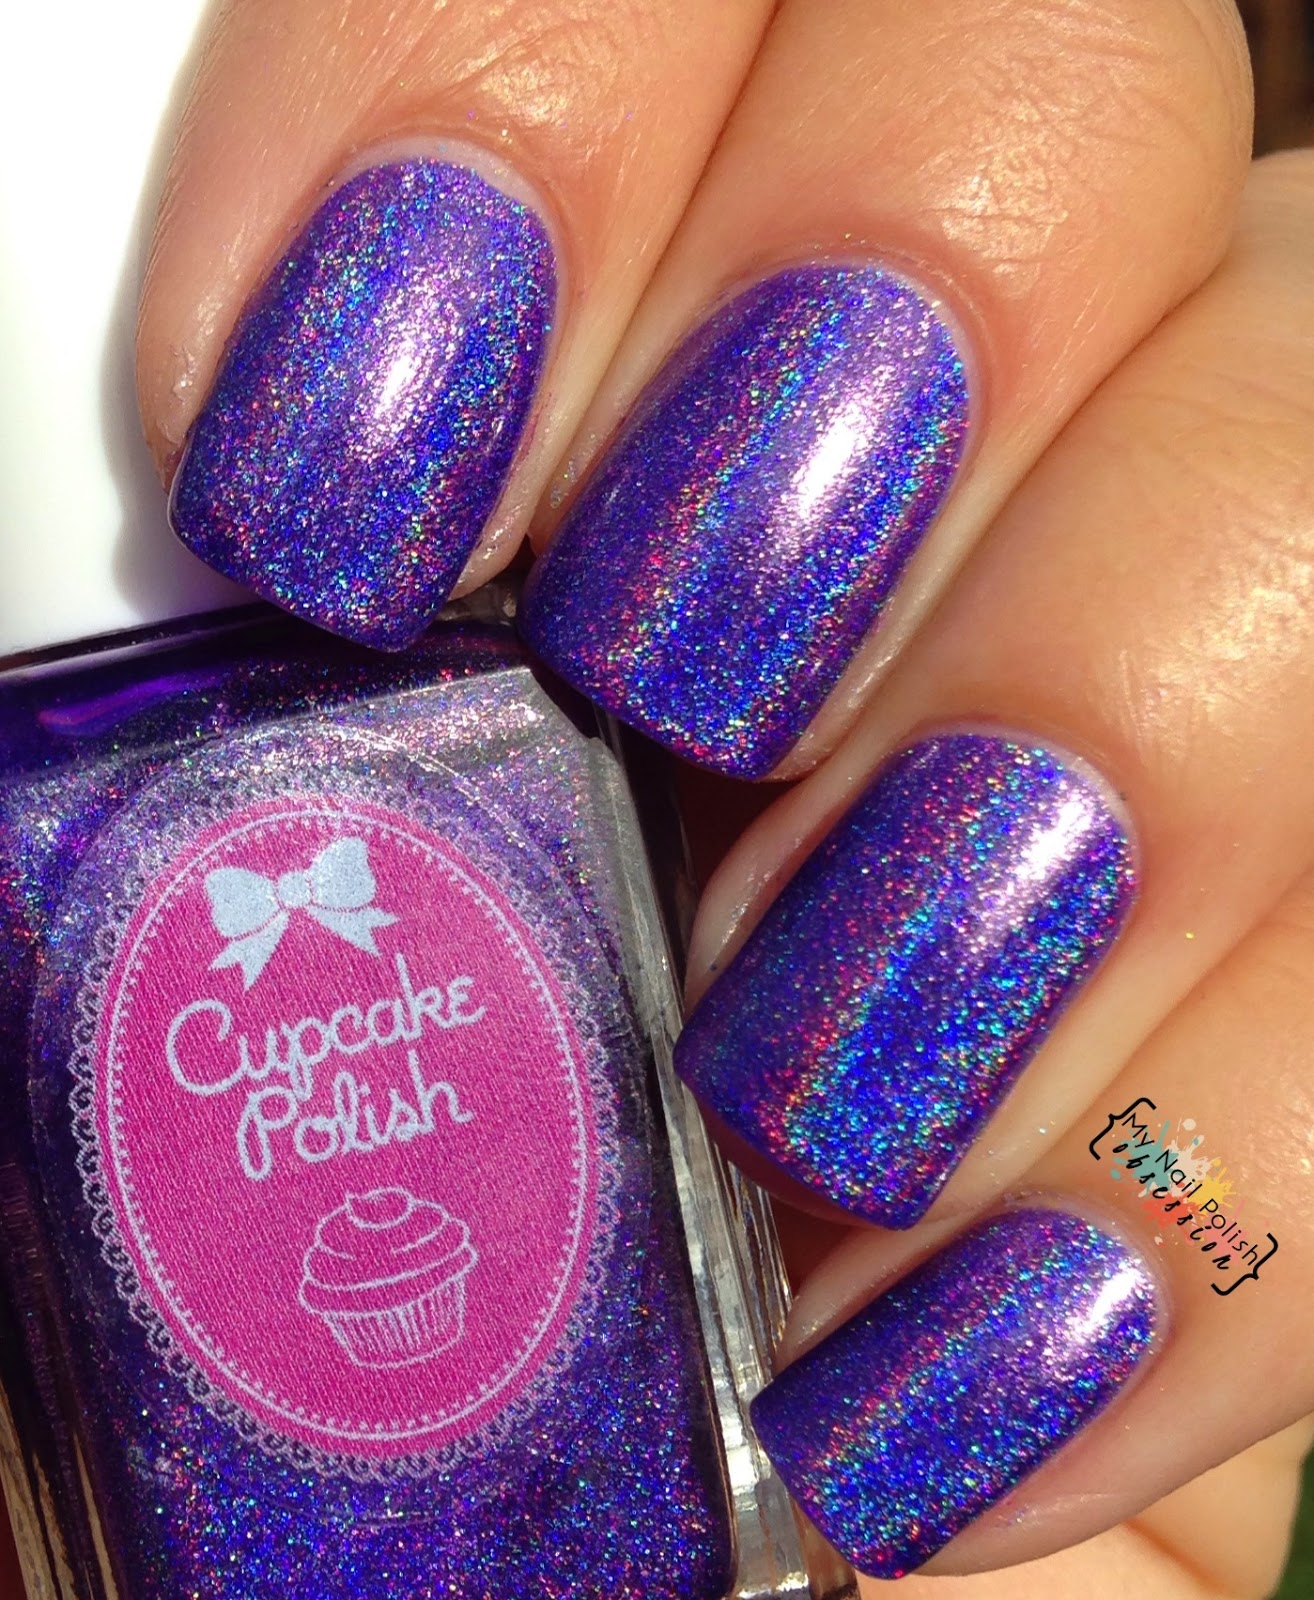 Cupcake Polish Yule Be Missing Me